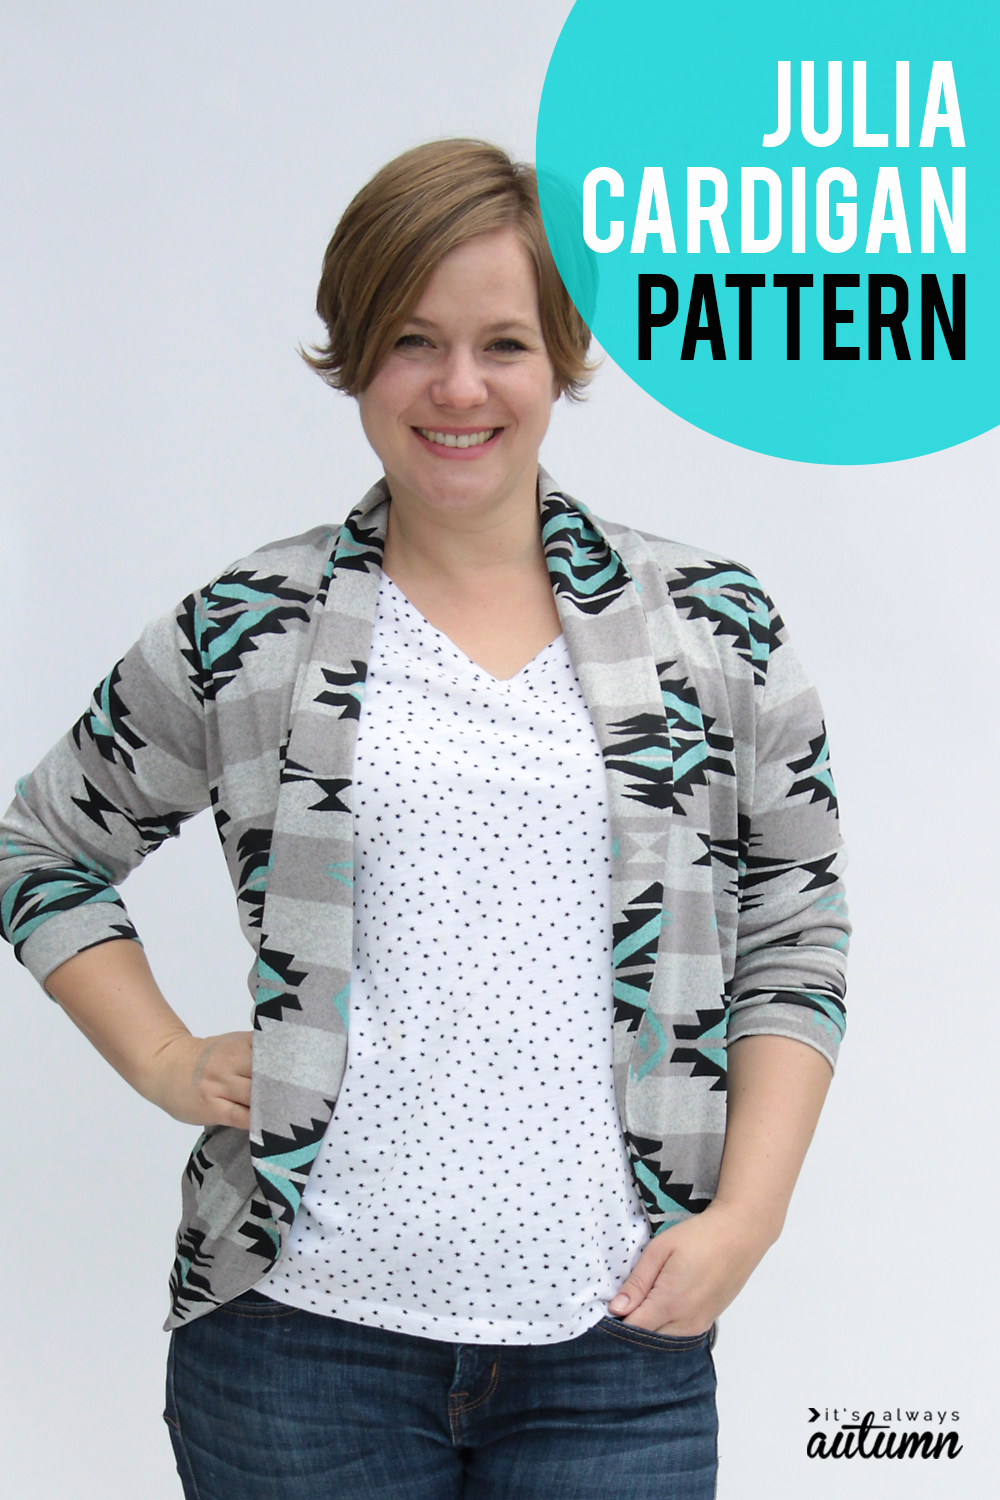 Pattern review of the Julia Cardigan pattern.